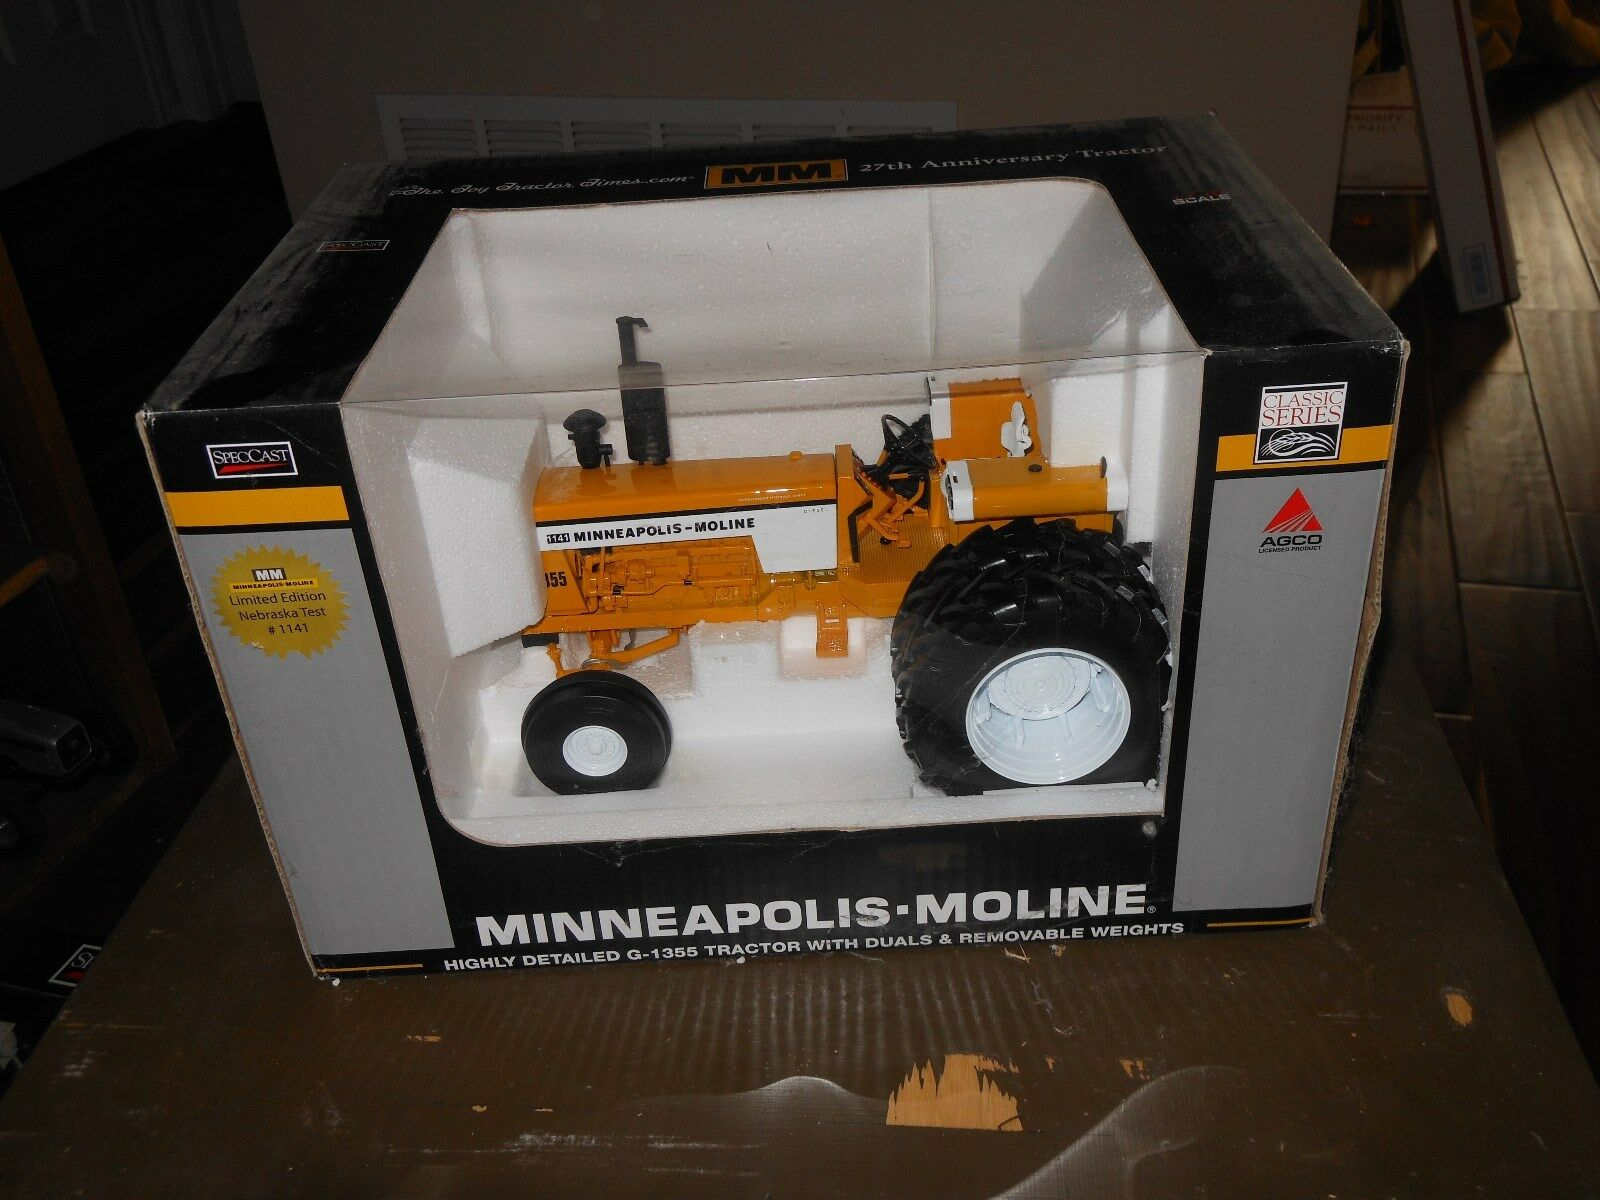 Minneapolis Moline G1355 diesel toy tractor   bianca, Oliver    very detailed